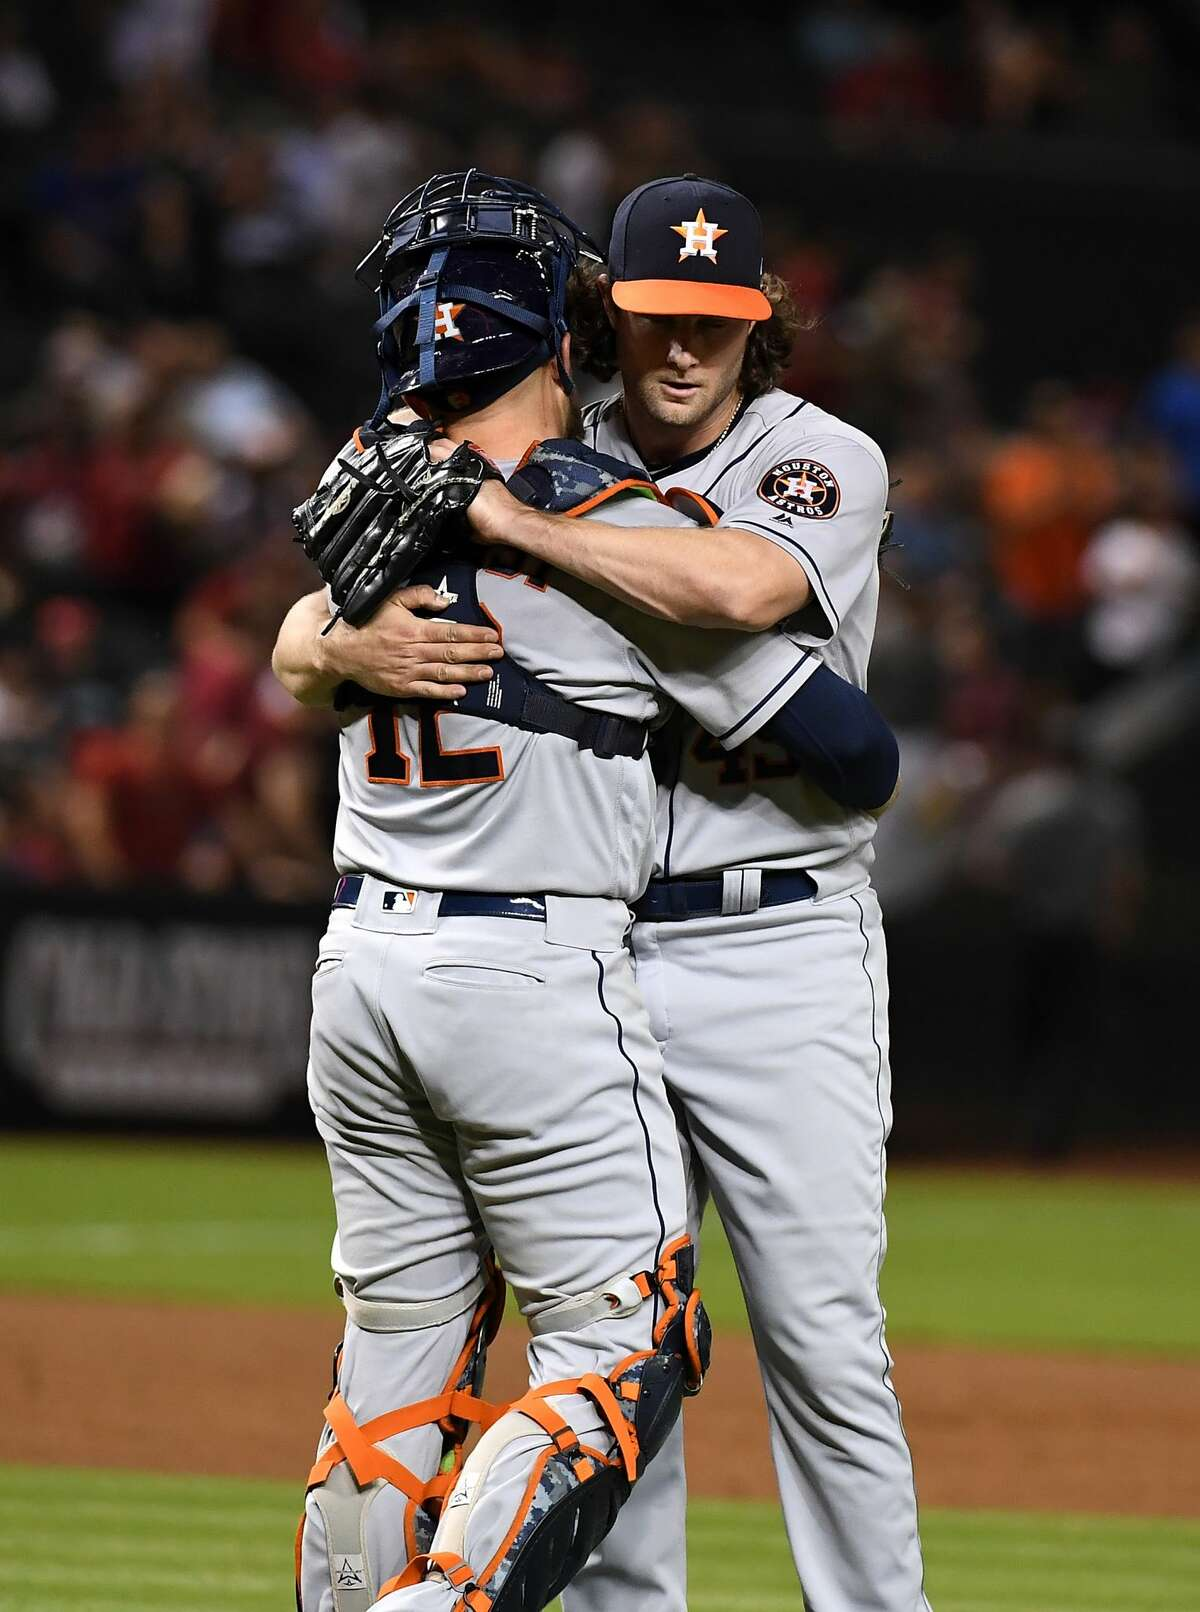 PHOENIX, AZ - MAY 04: Gerrit Cole #45 and Max Stassi #12 of the Houston Astros celebrate an 8-0 win against the Arizona Diamondbacks at Chase Field on May 4, 2018 in Phoenix, Arizona. (Photo by Norm Hall/Getty Images)